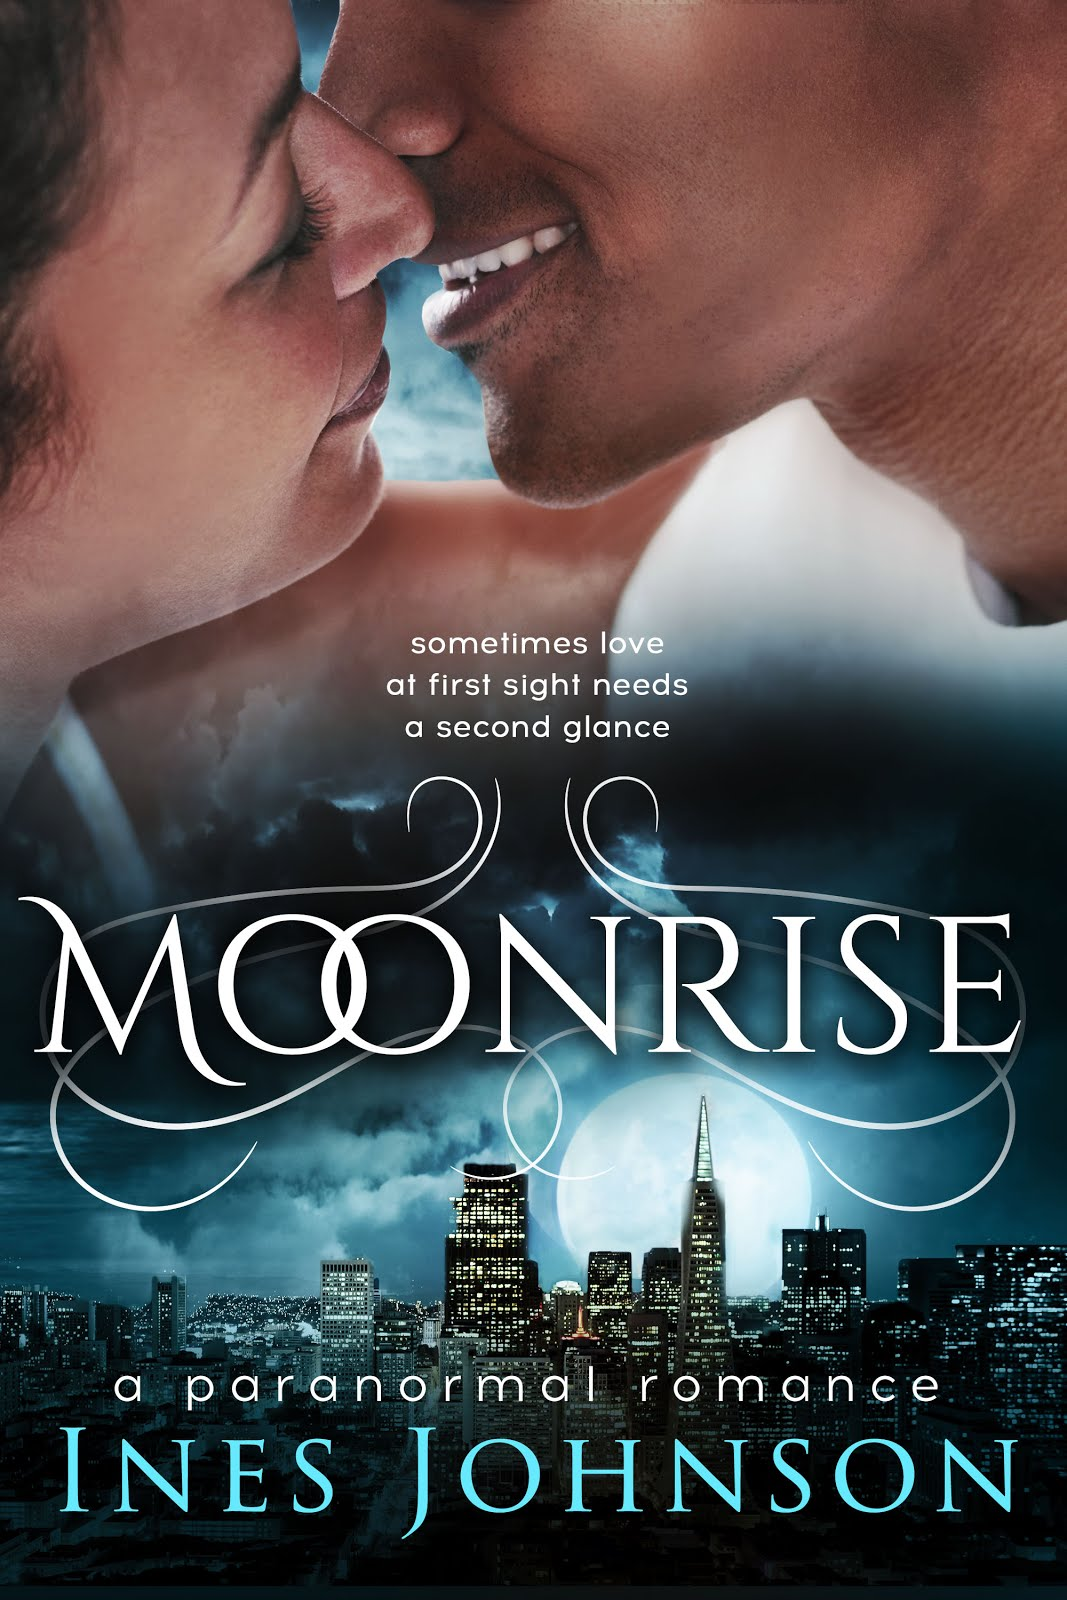 Moonrise by Ines Johnson